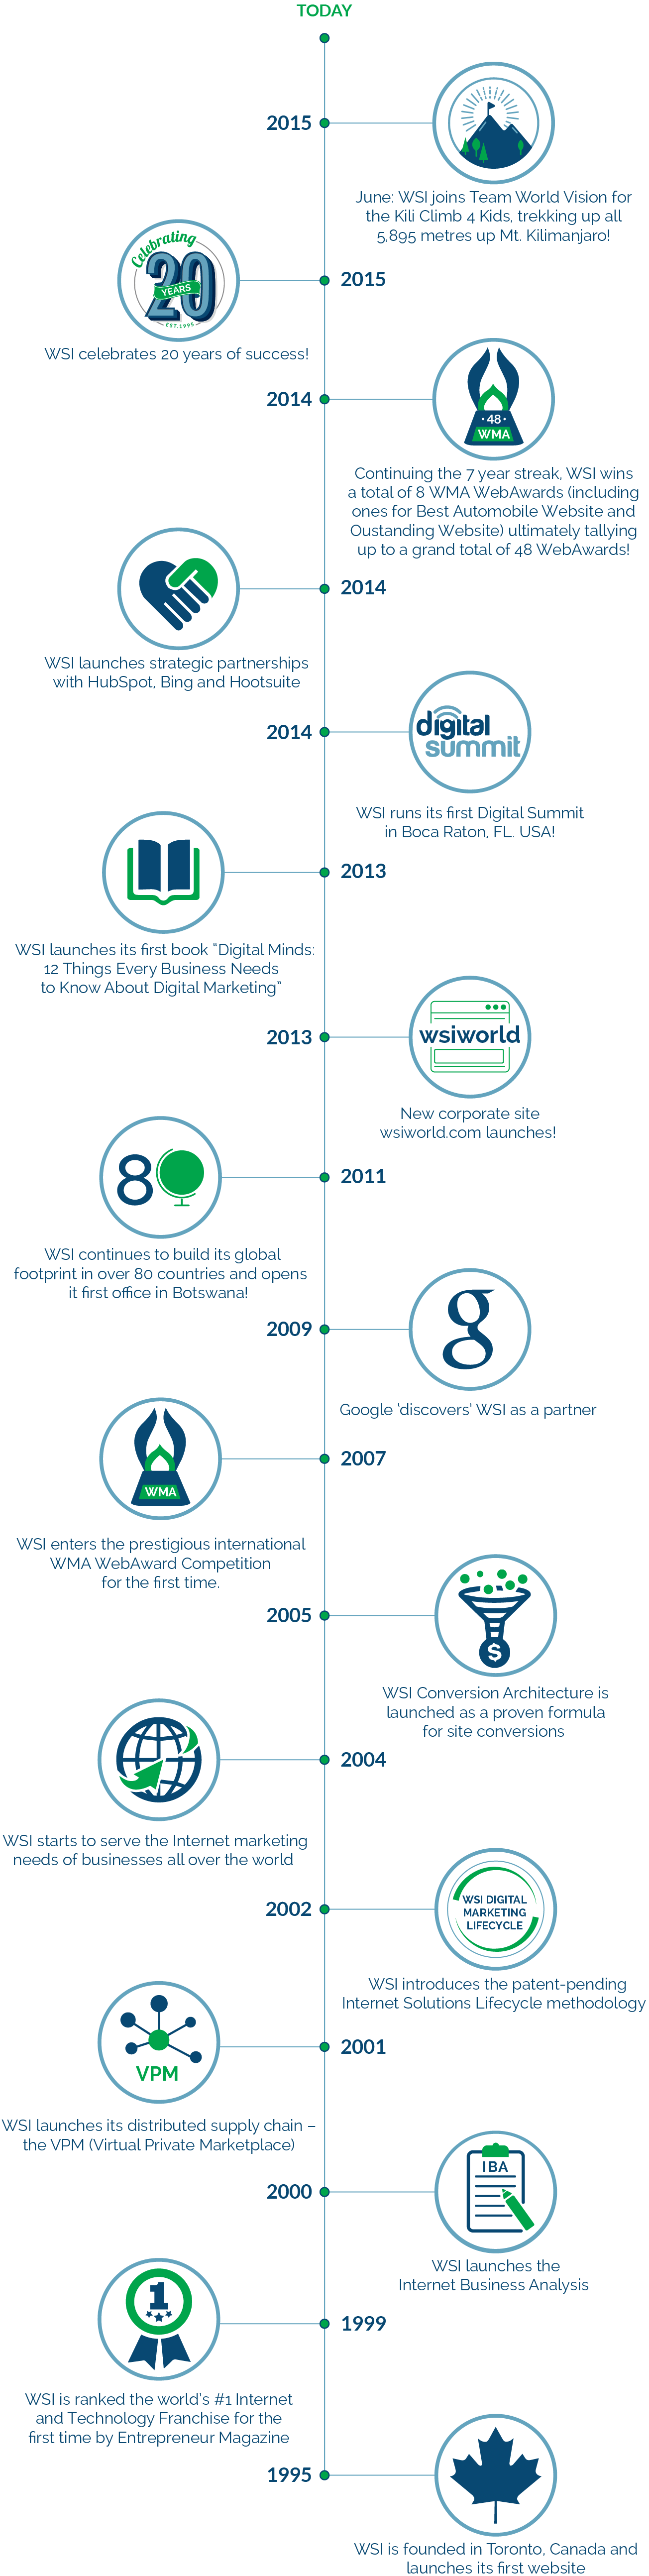 Timeline - The History of WSI